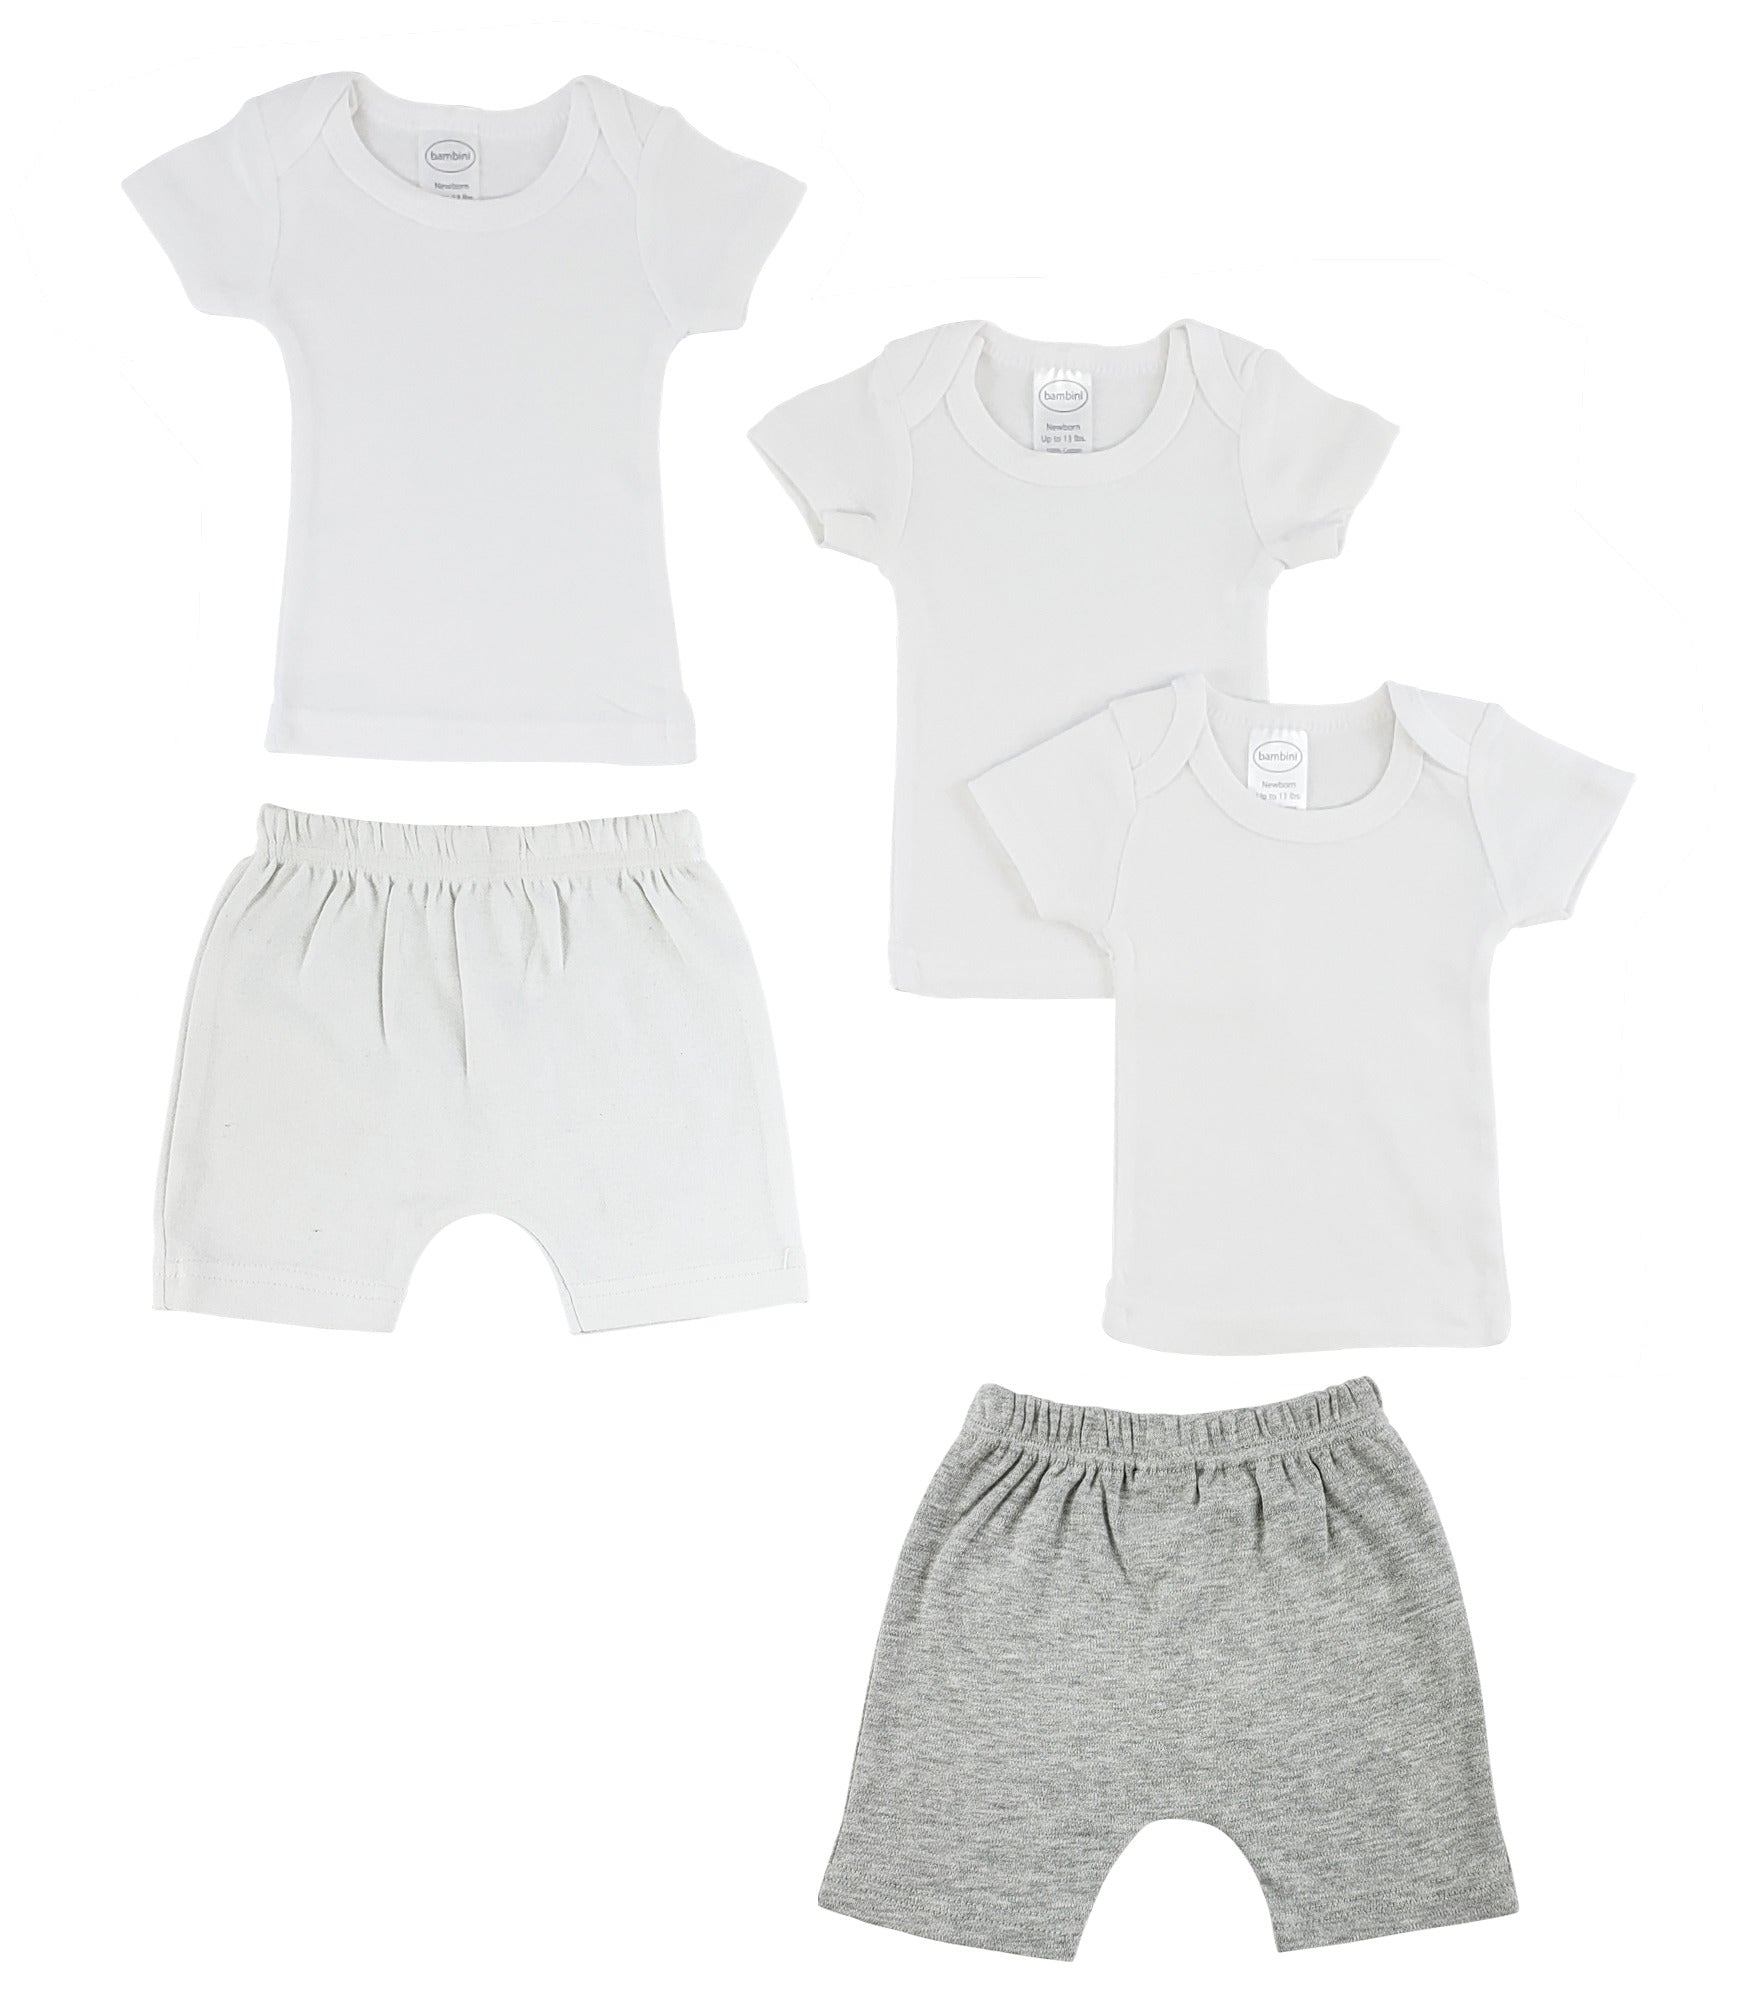 Infant T-Shirts and Pants